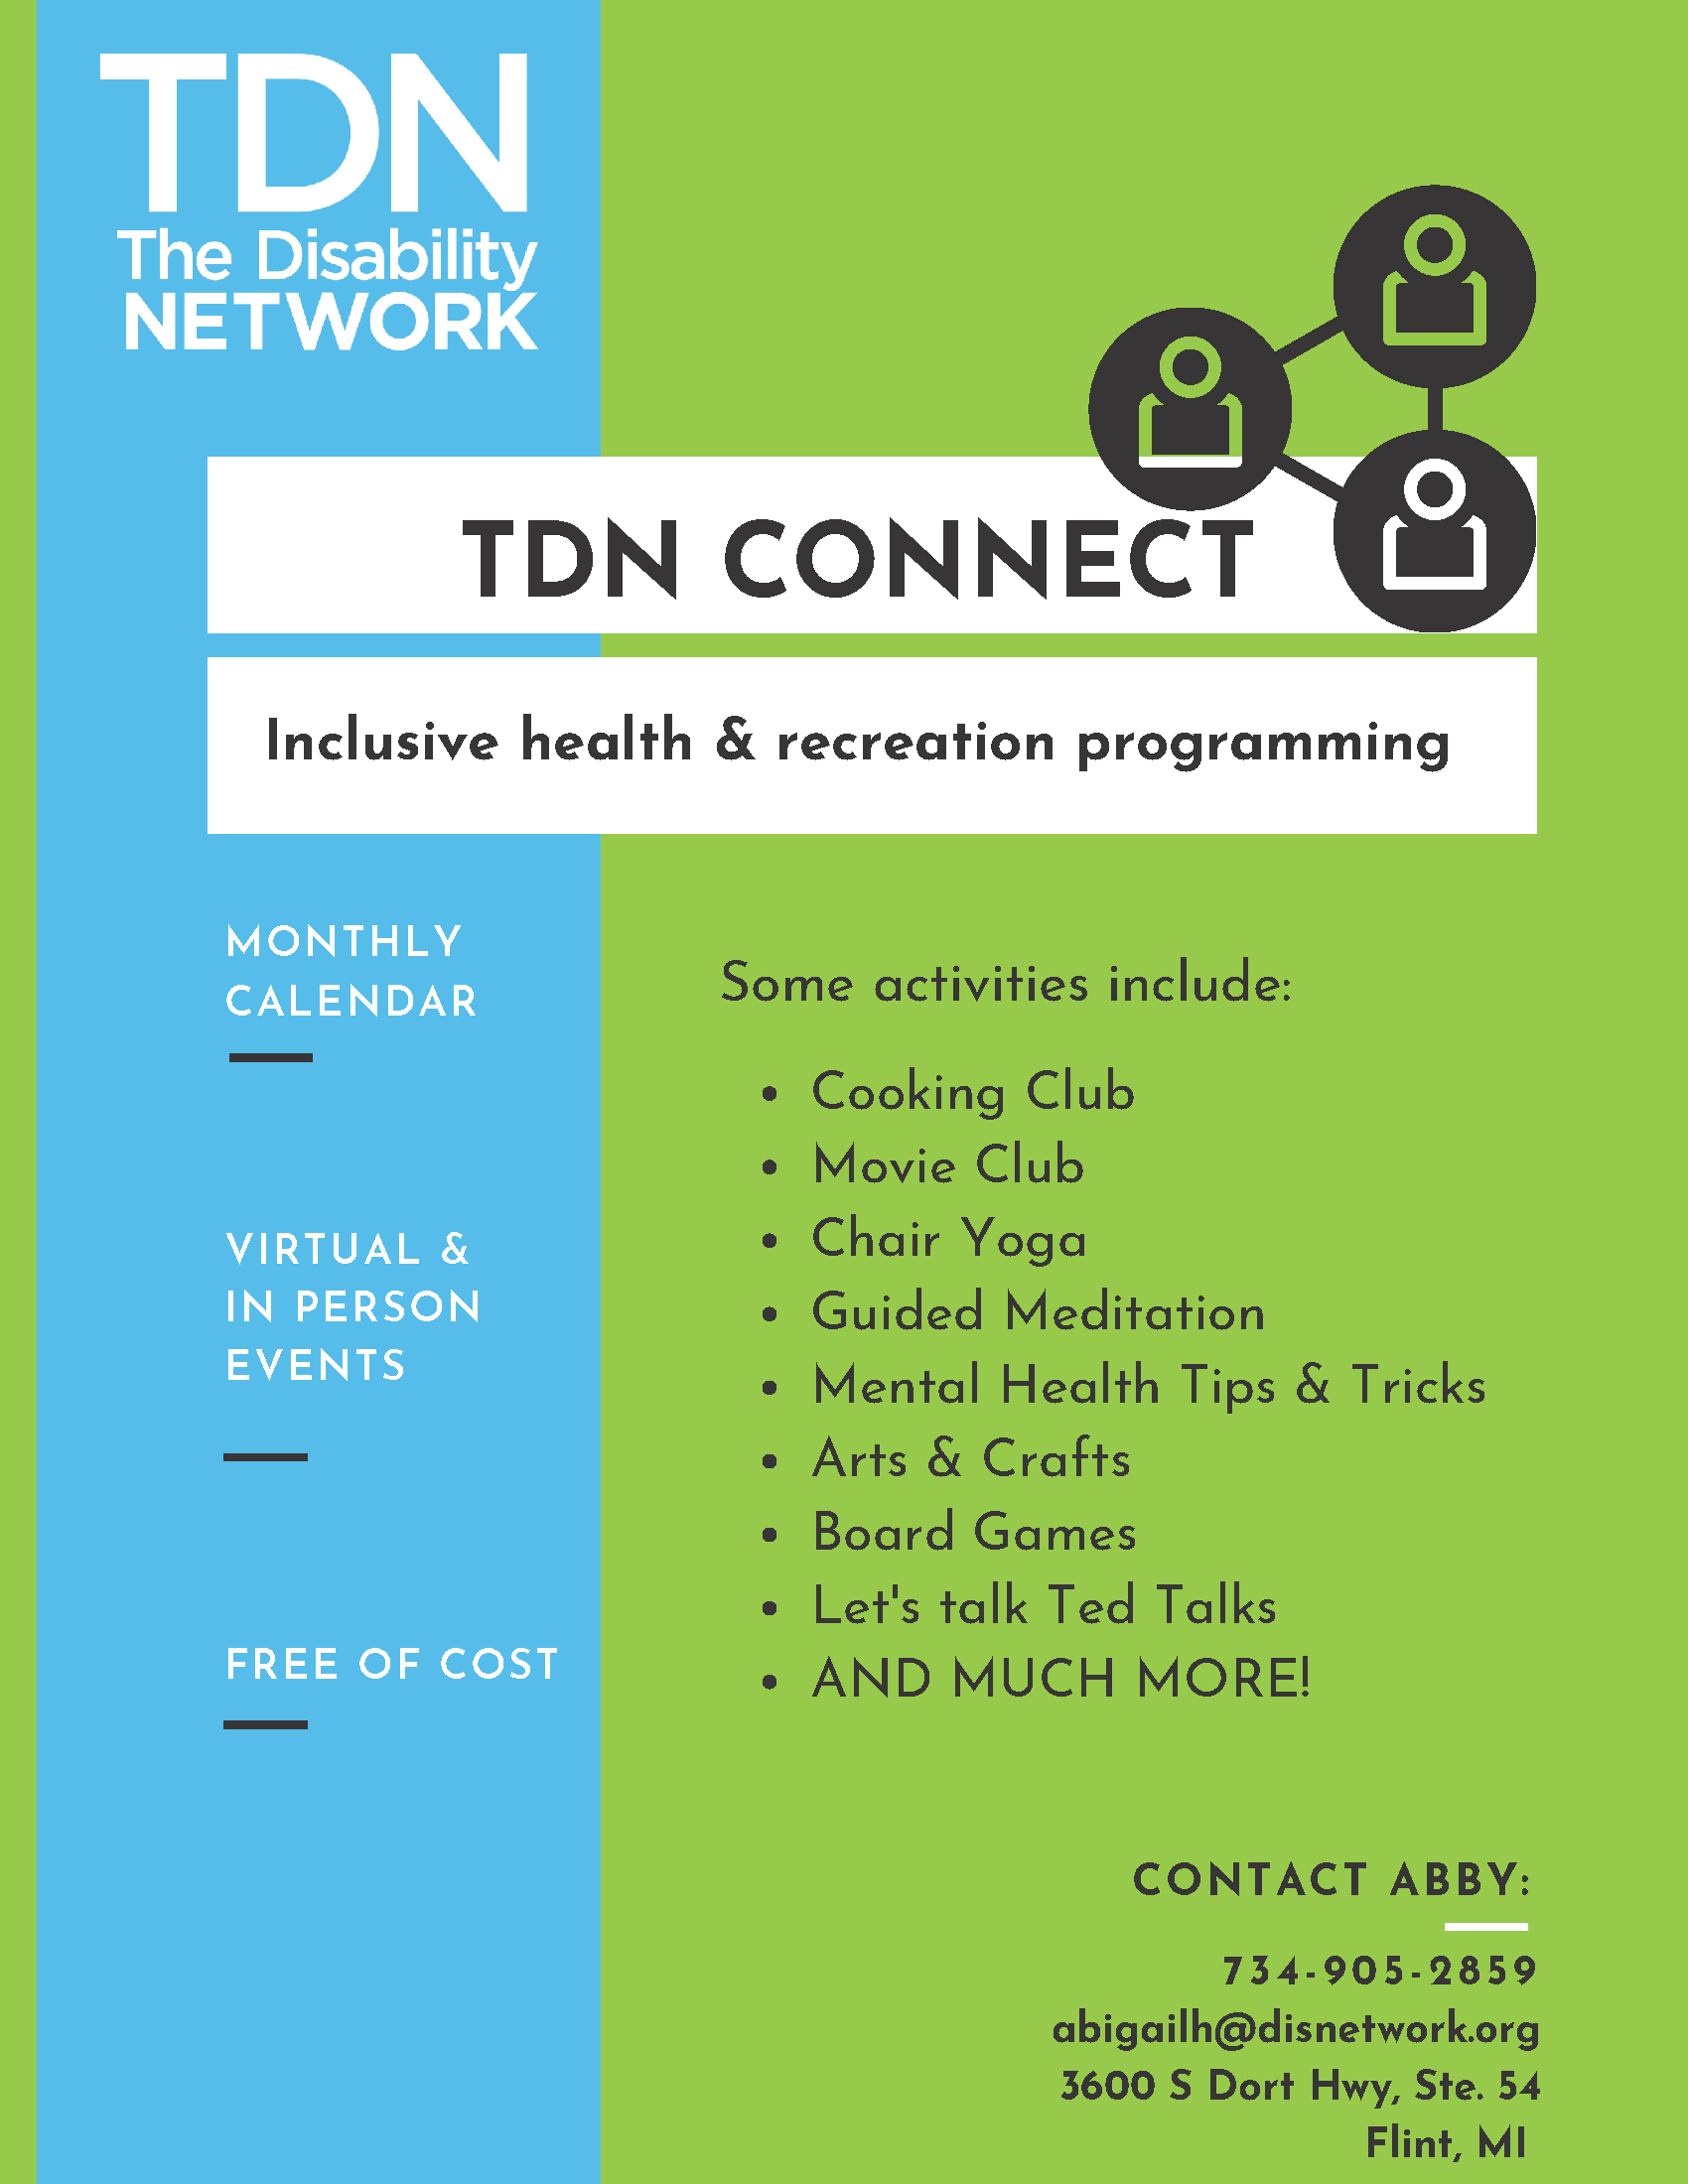 Flyer describing The Disability Connect programming. Full details are described next.